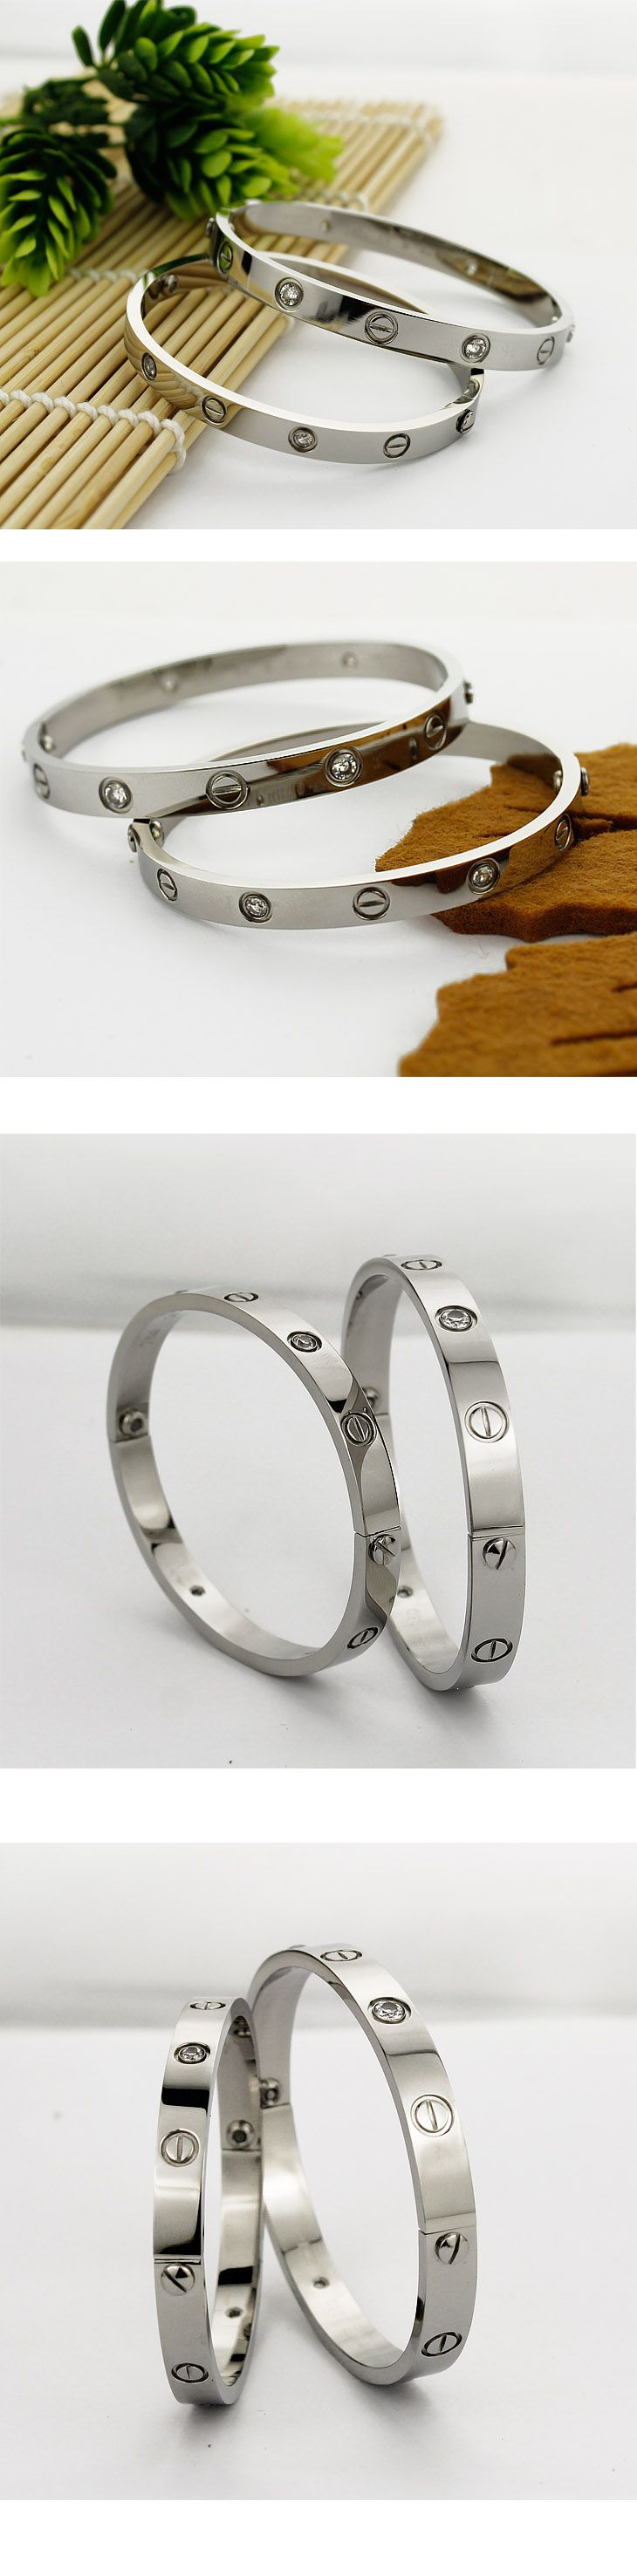 Cartier Leve Lovers Bangles White Gold Diamond Price:88.99